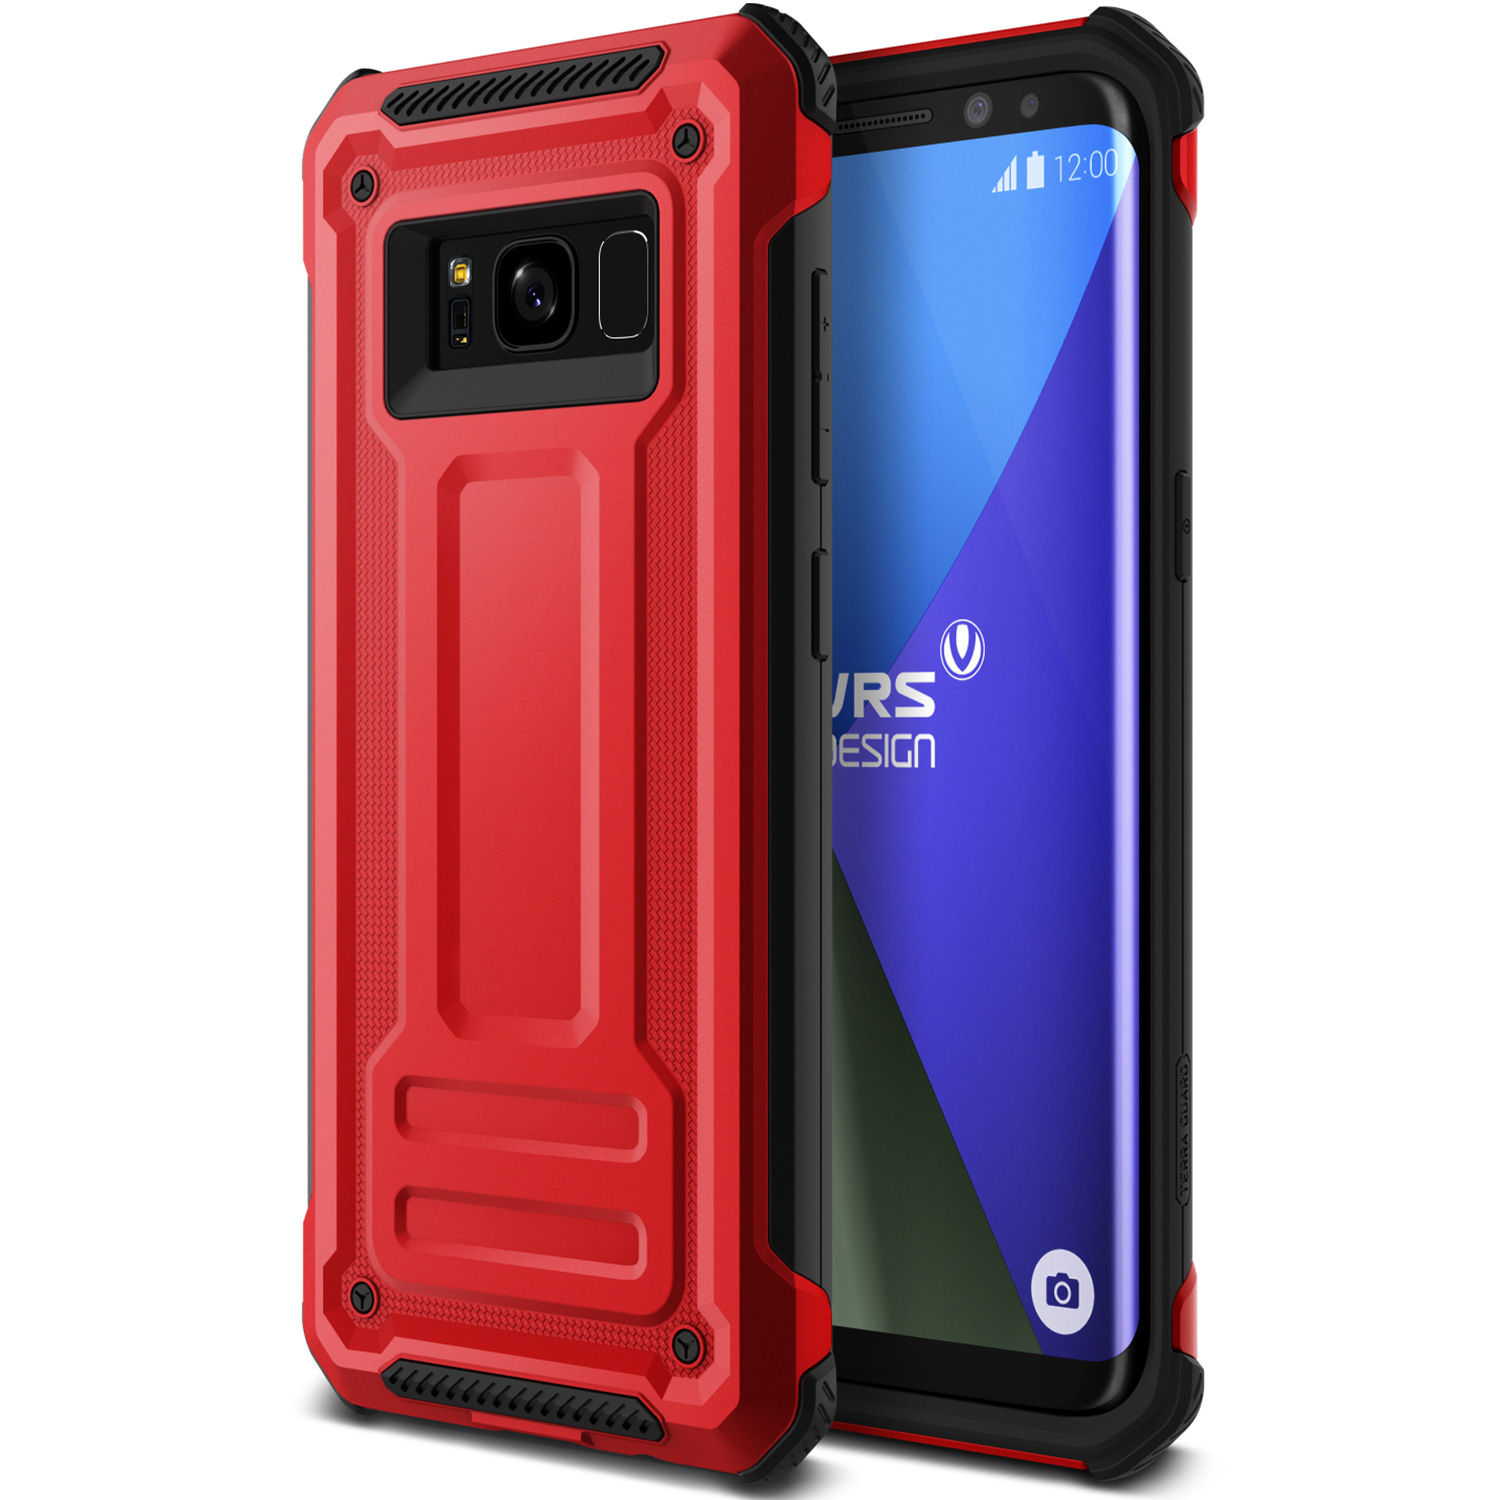 Samsung Galaxy S8 Plus Case Cover   Shockproof Slim Protection   VRS Design Terra Guard for Samsung Galaxy S8 Plus